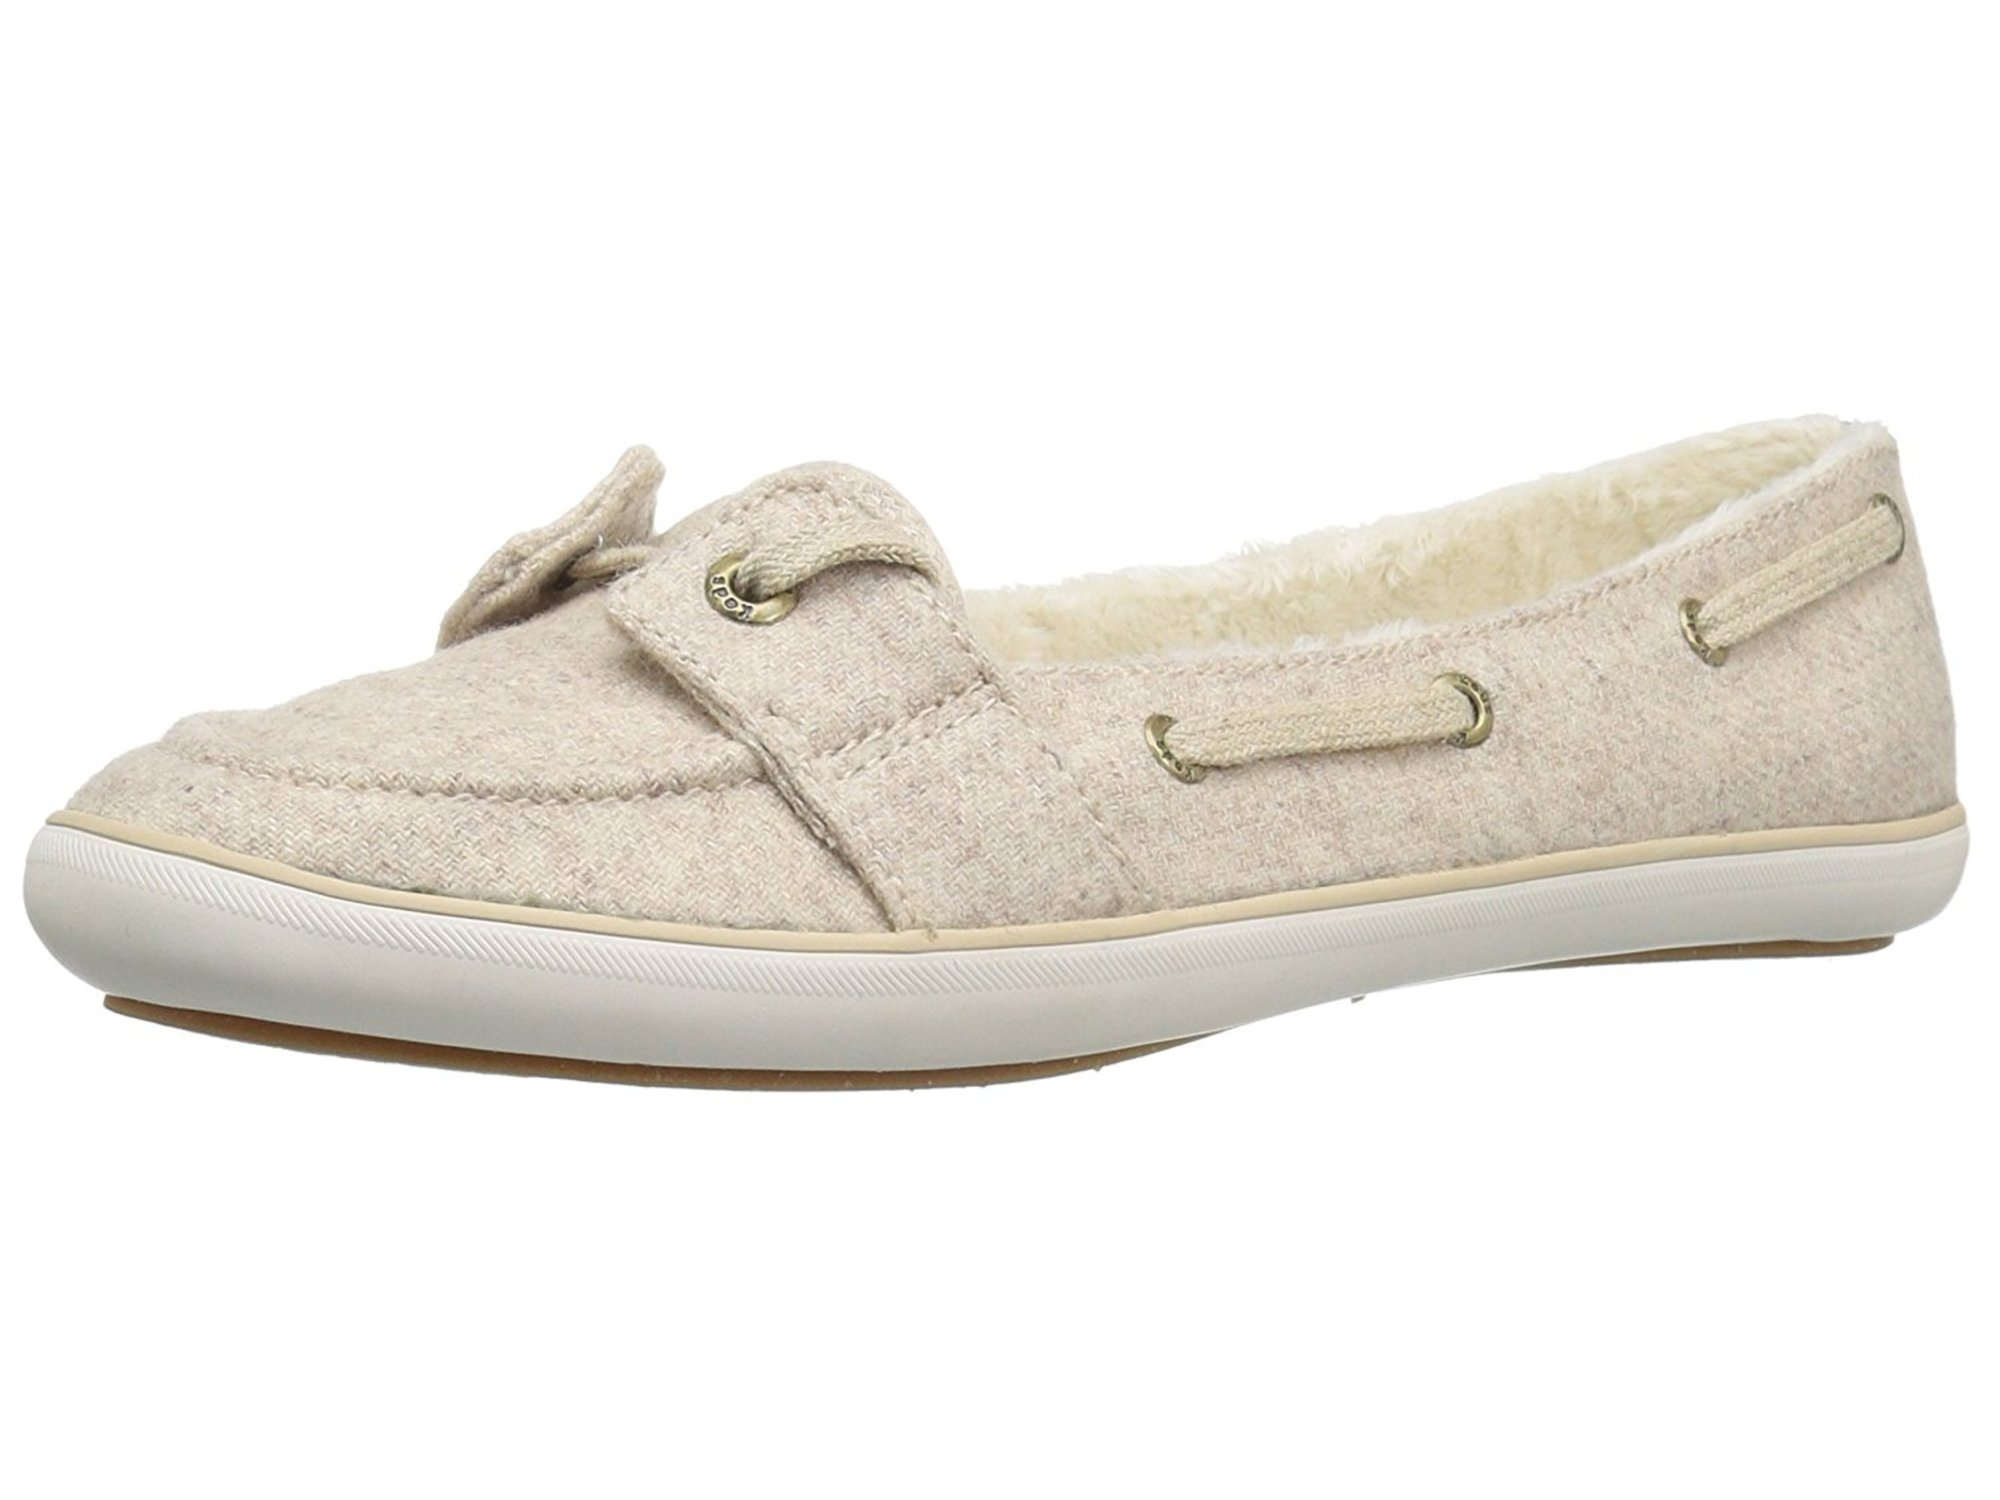 Keds Womens Teacup Low Top Slip On Fashion Sneakers by Keds